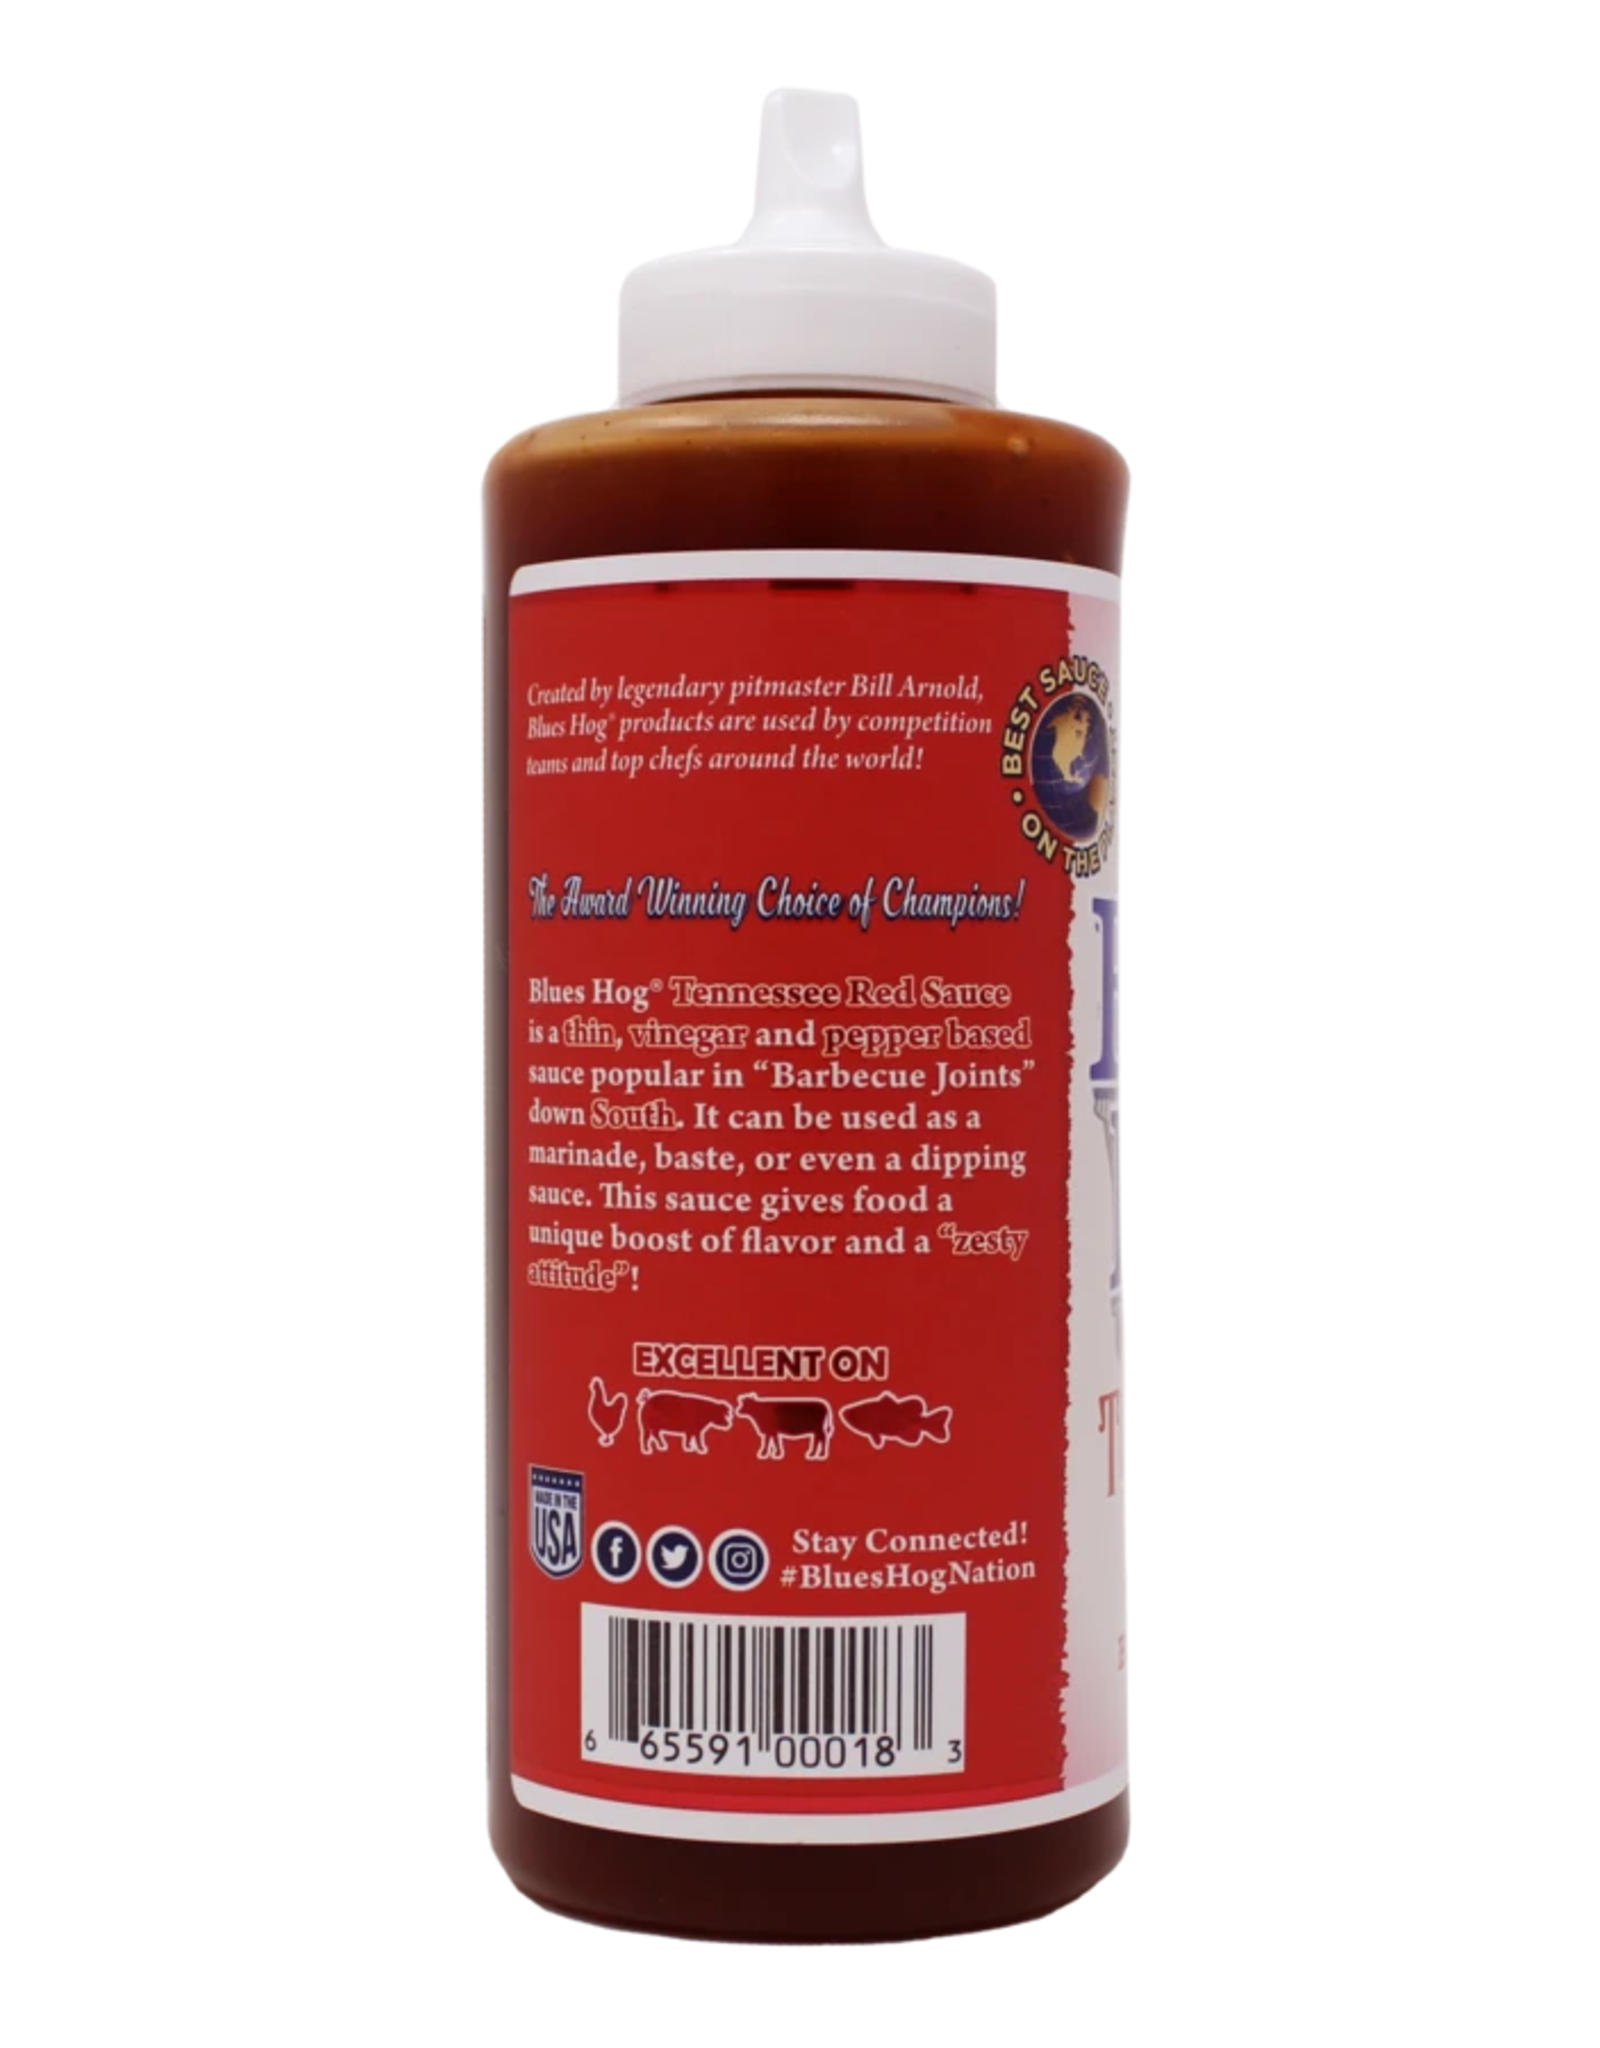 Blues Hog Blues Hog Tennessee Red BBQ Sauce Squeeze Bottle 23 oz.